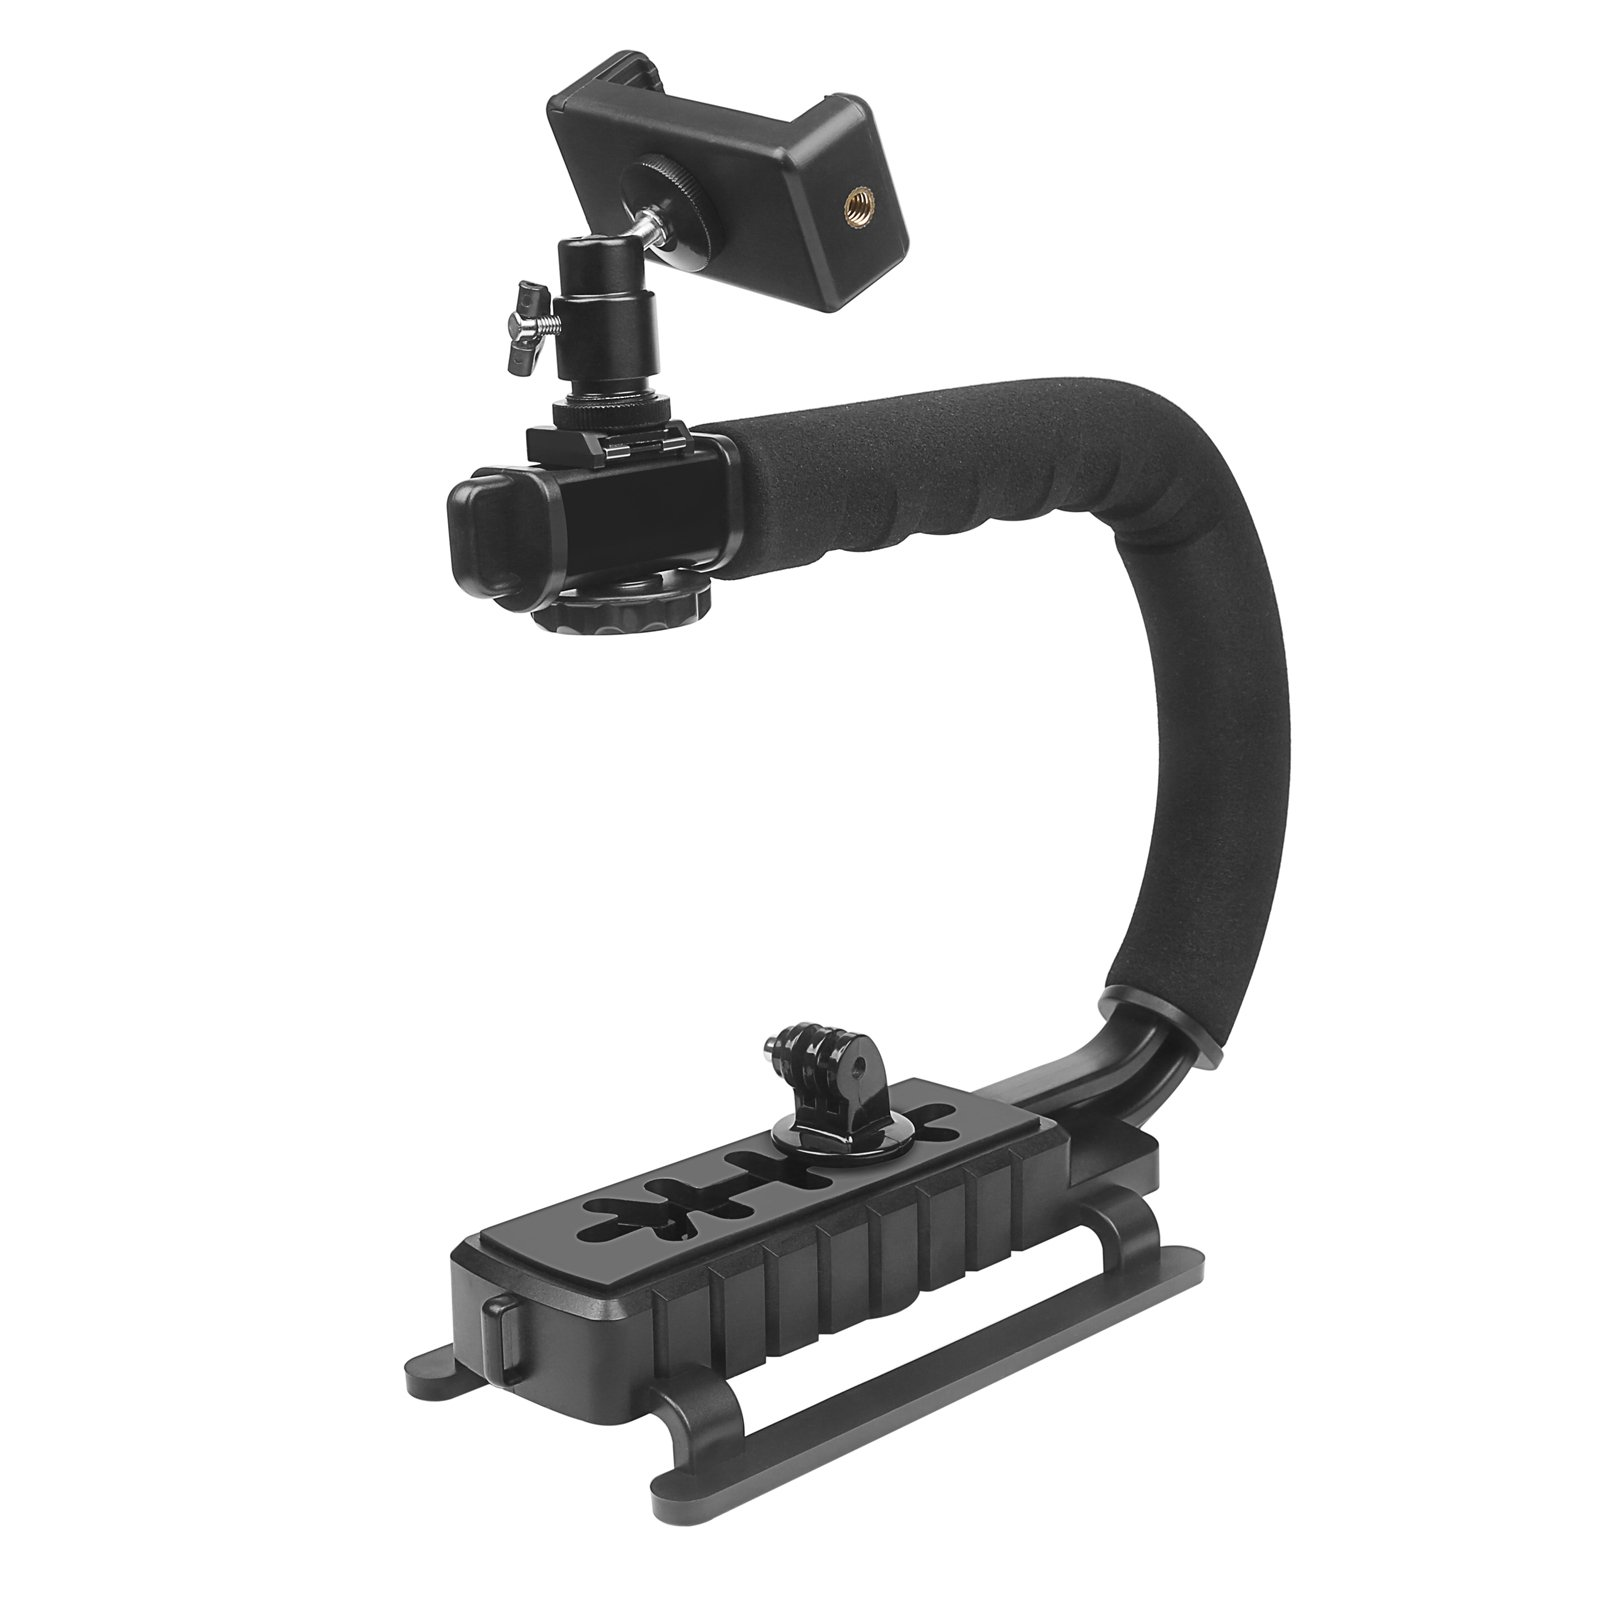 D&F Video Stabilizer Handheld Stabilizing Grip Hand Holder with 1/4 Screw Hole for GoPro 6/5/4/3+/3 SJCAM, Sony Canon Nikon DSLR and DV Camcorder